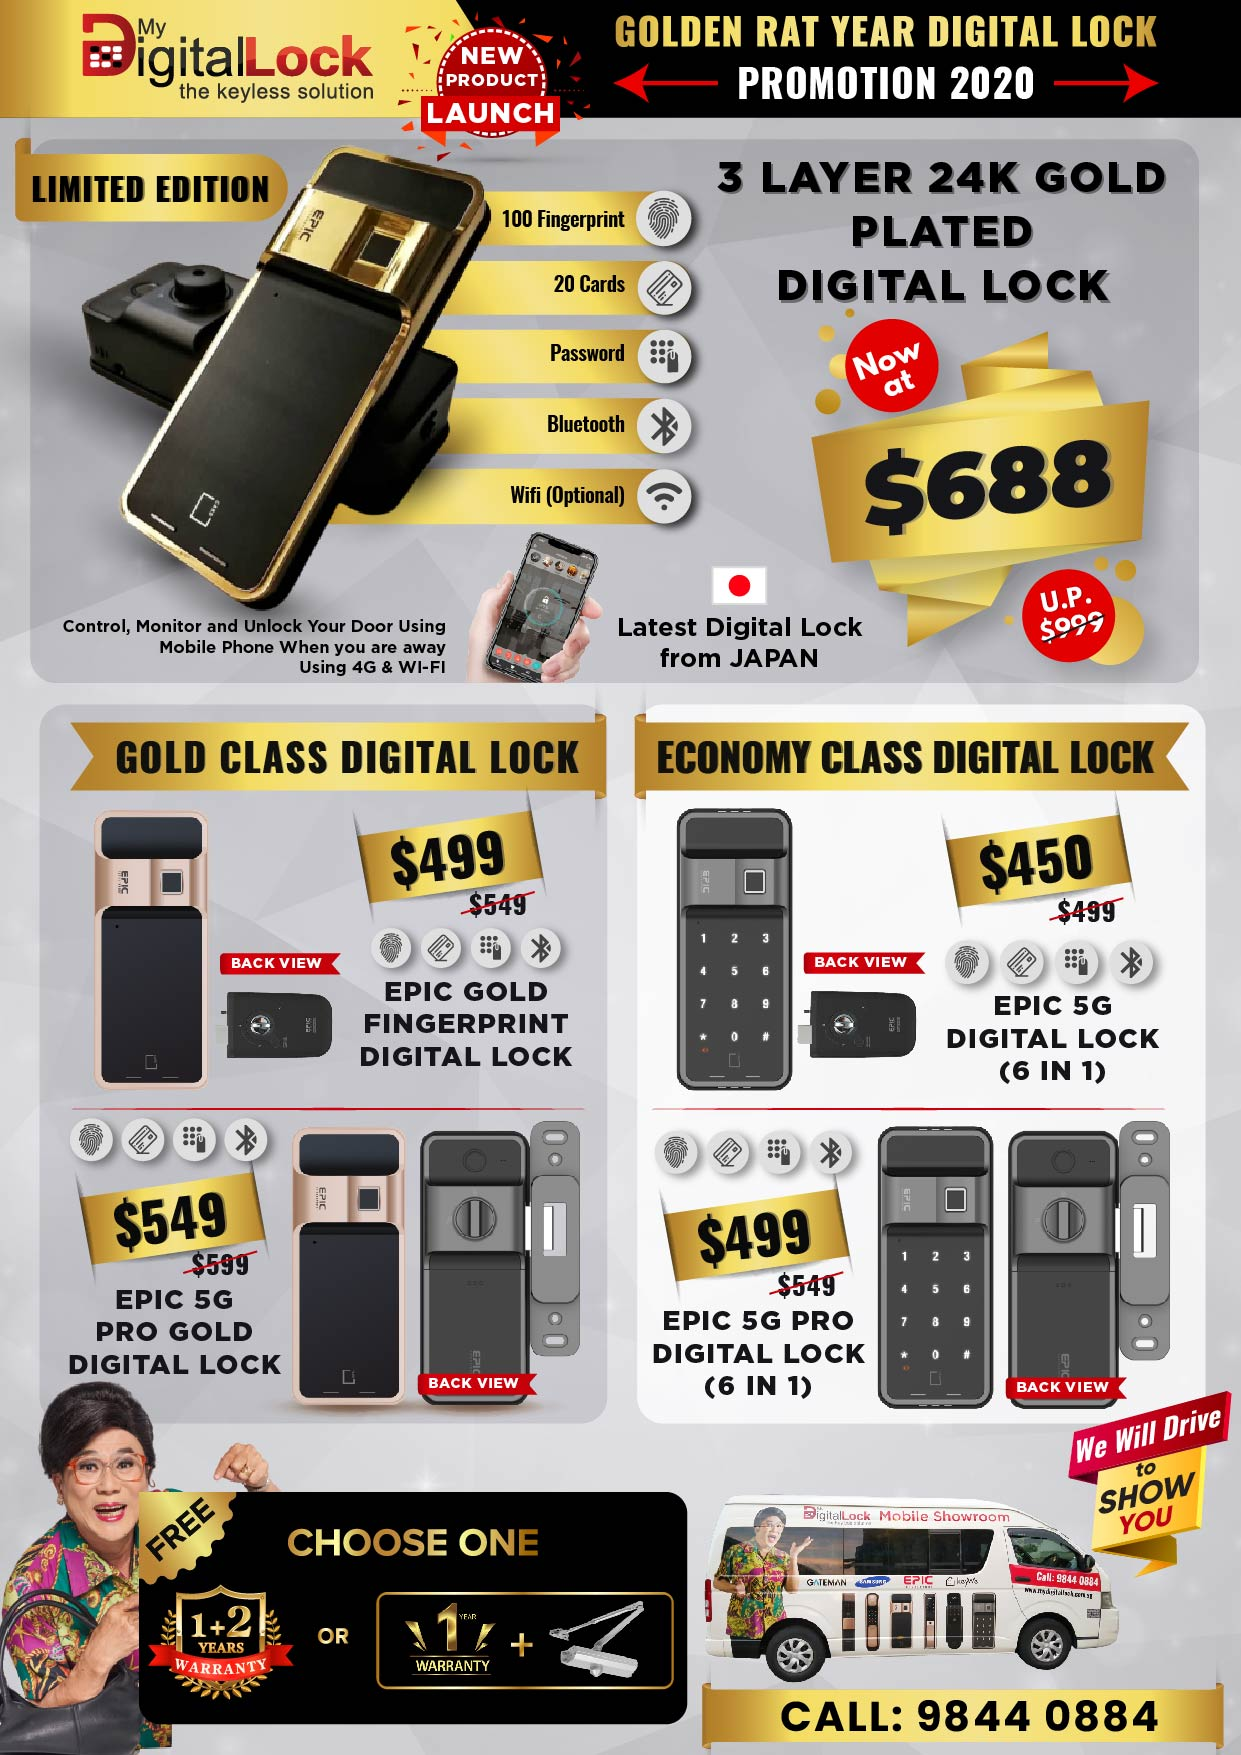 Golden Rat Year Digital Lock Promotions for 24K Gold, Satin Gold and Black Digital Lock for Door and Gate